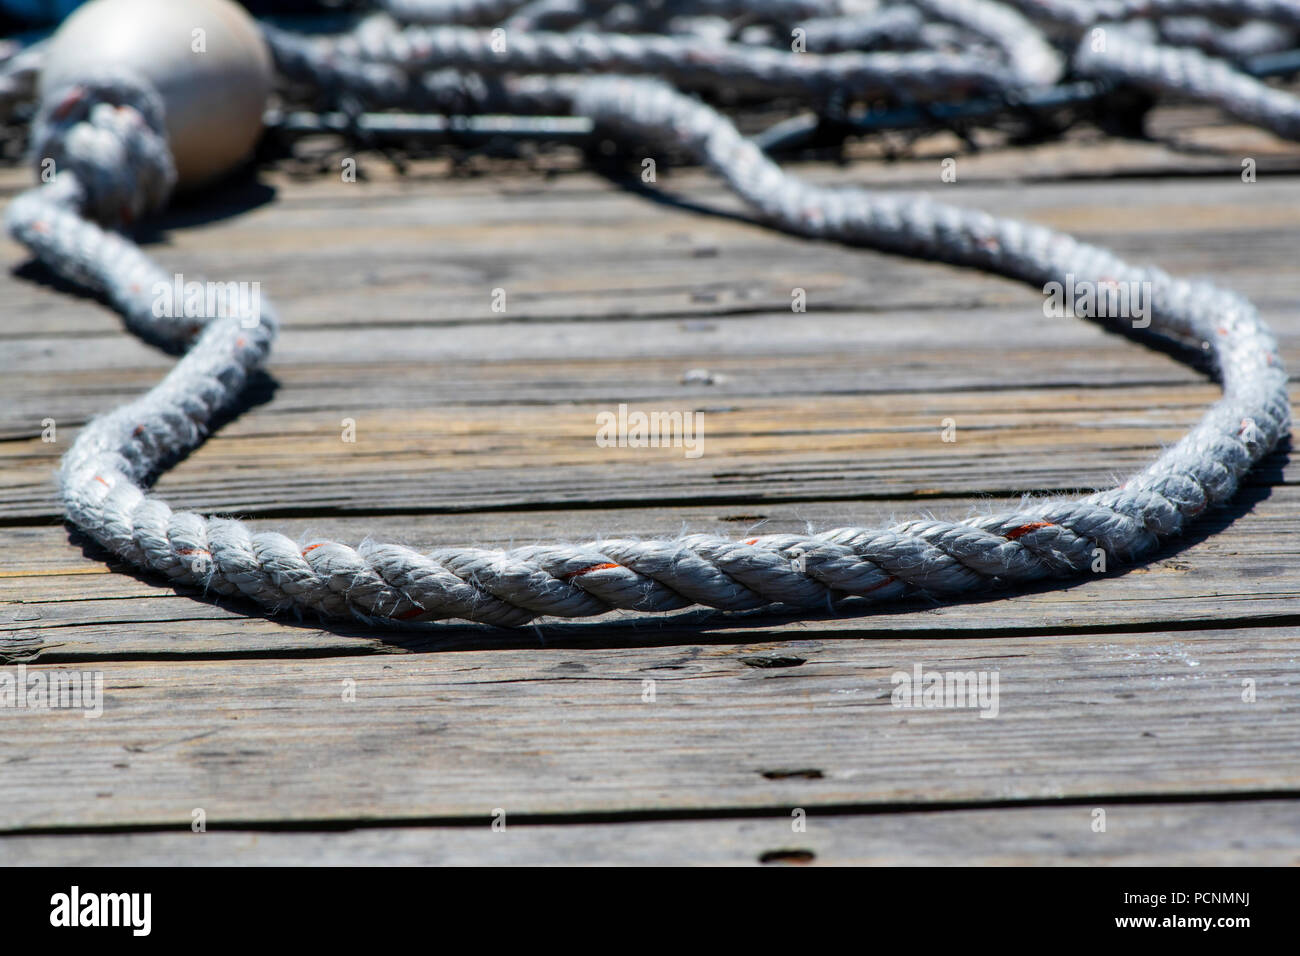 Rope on a pier - Stock Image